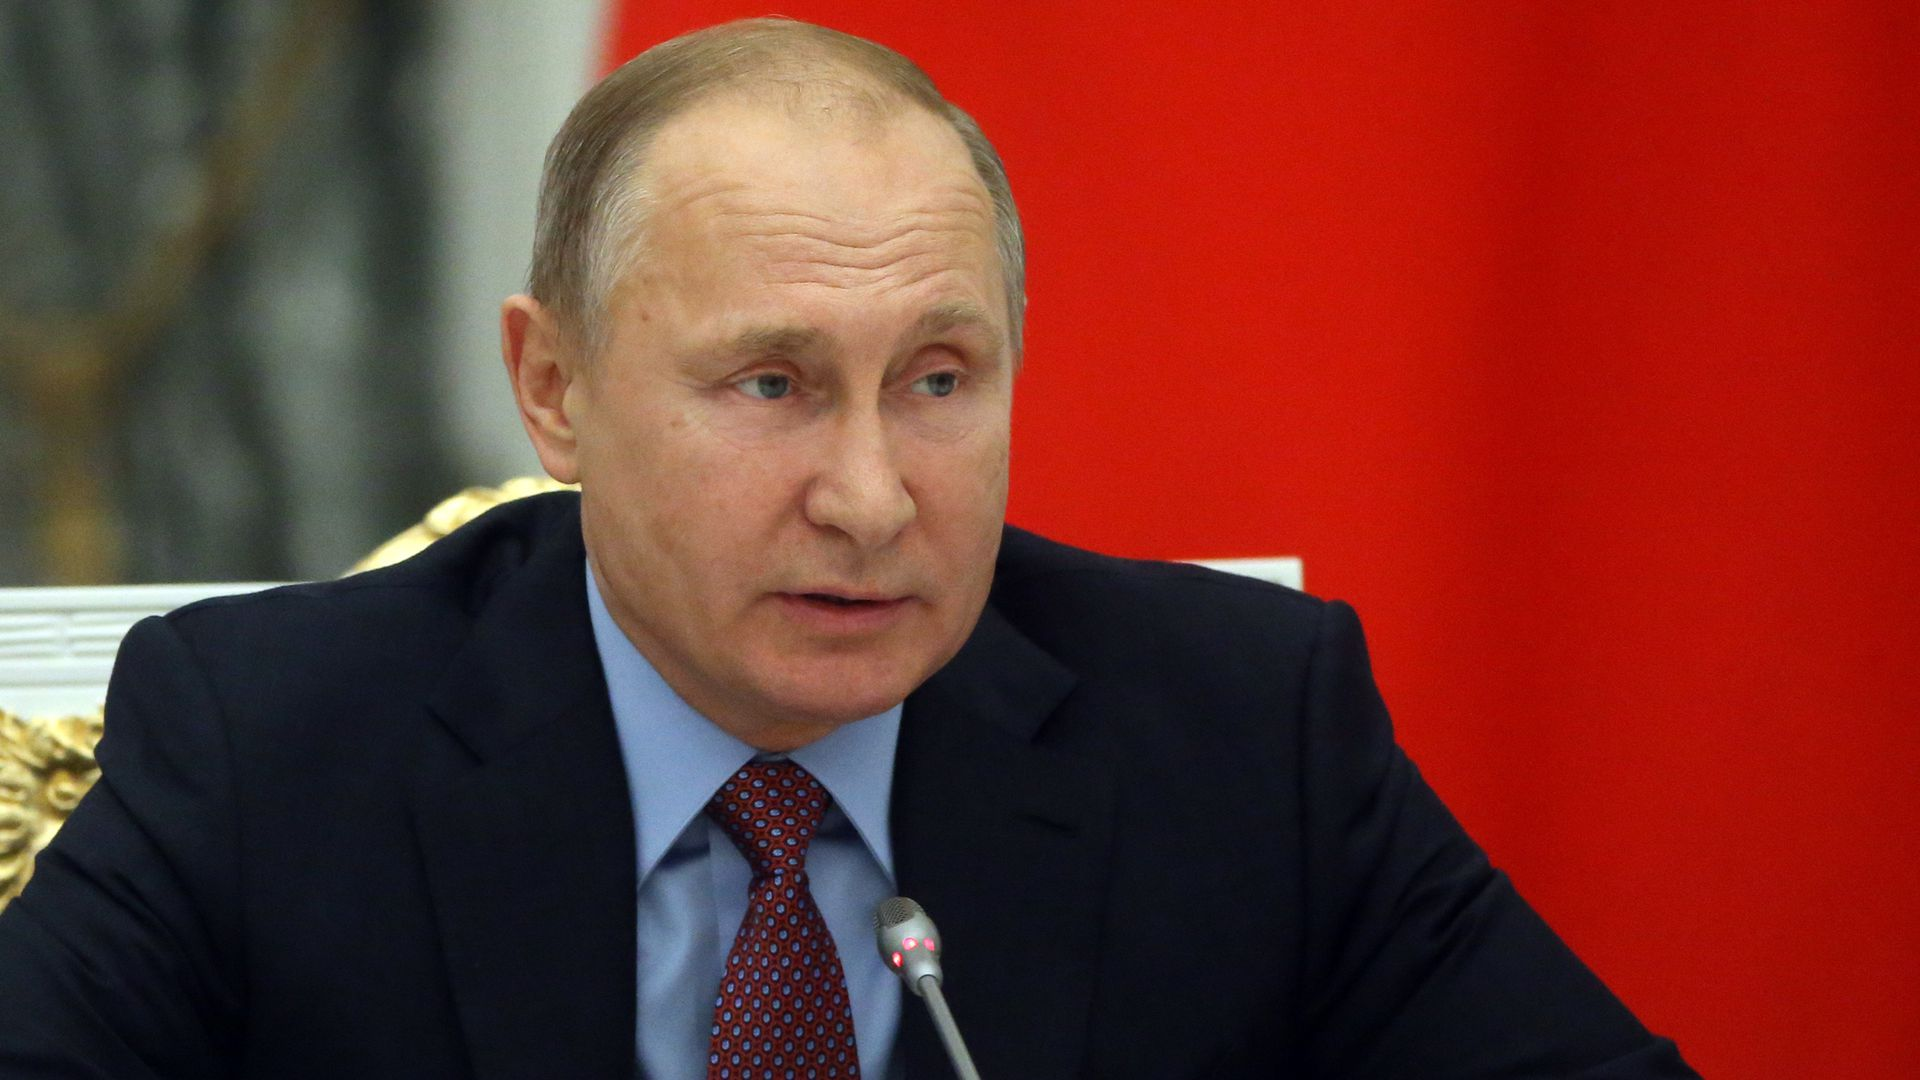 Vladimir Putin seated at microphone during meeting